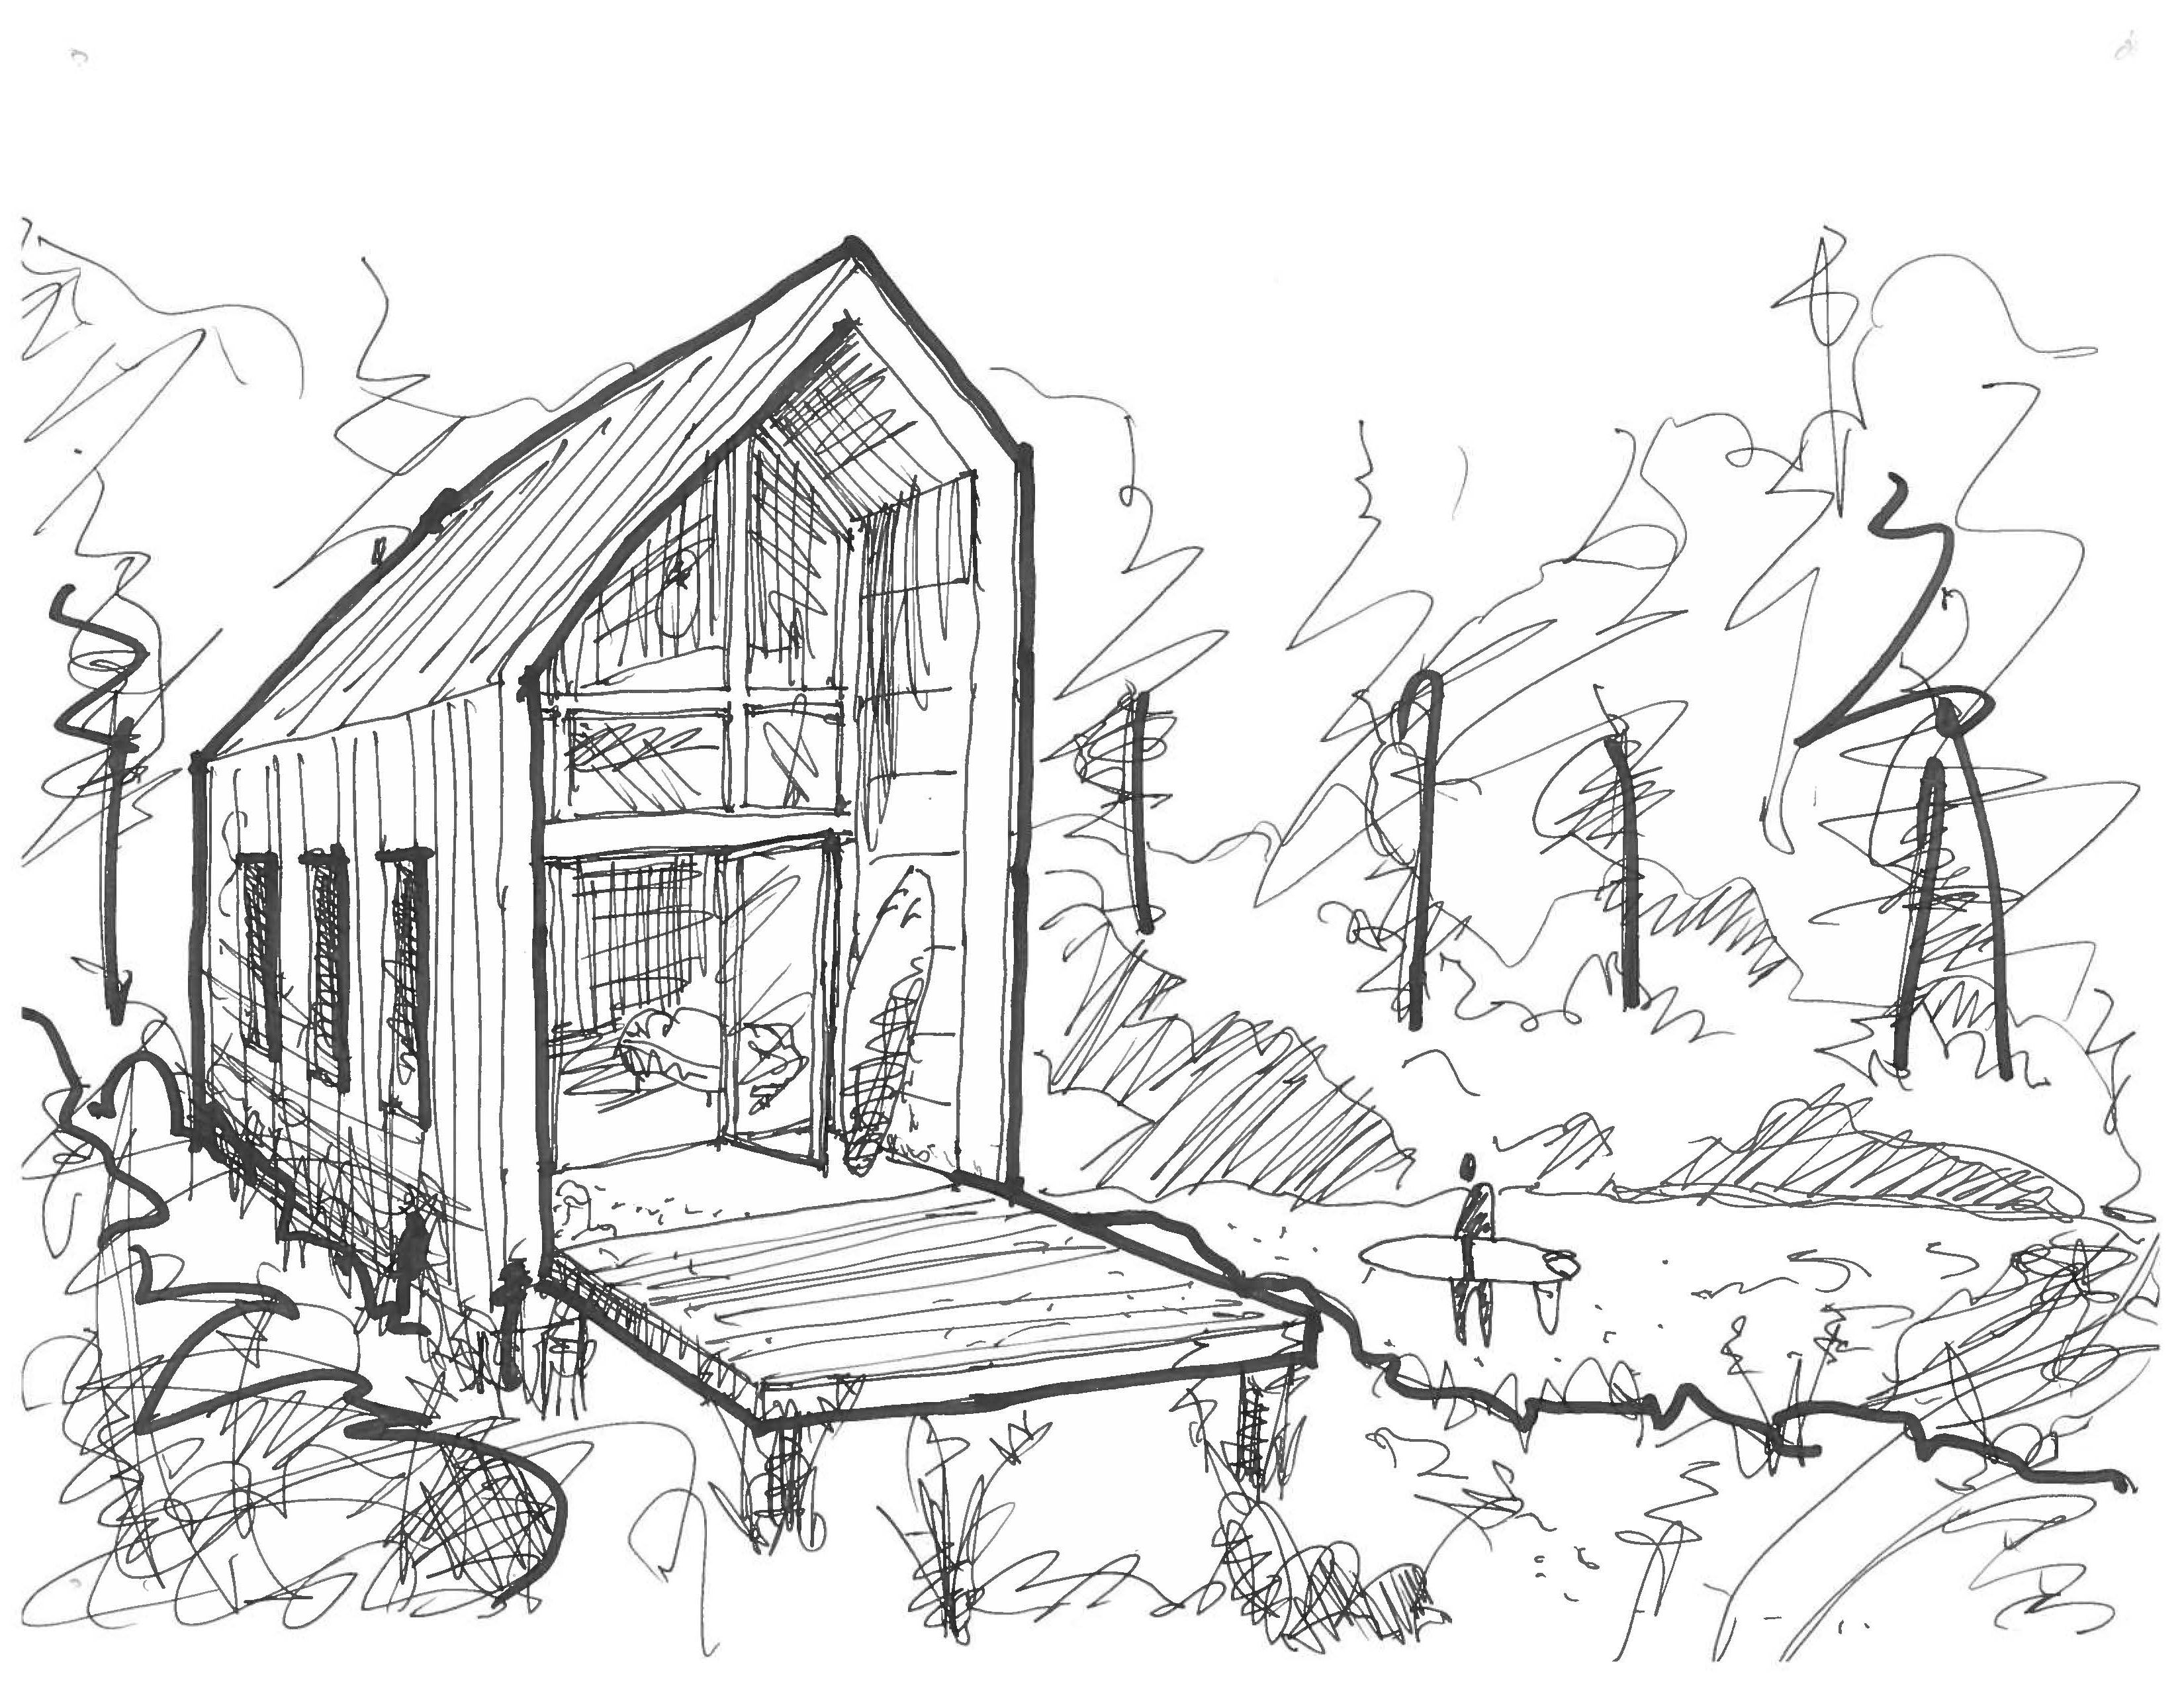 3300x2550 The Second Sketch Of The New Renderings To Be Coming Out As Part